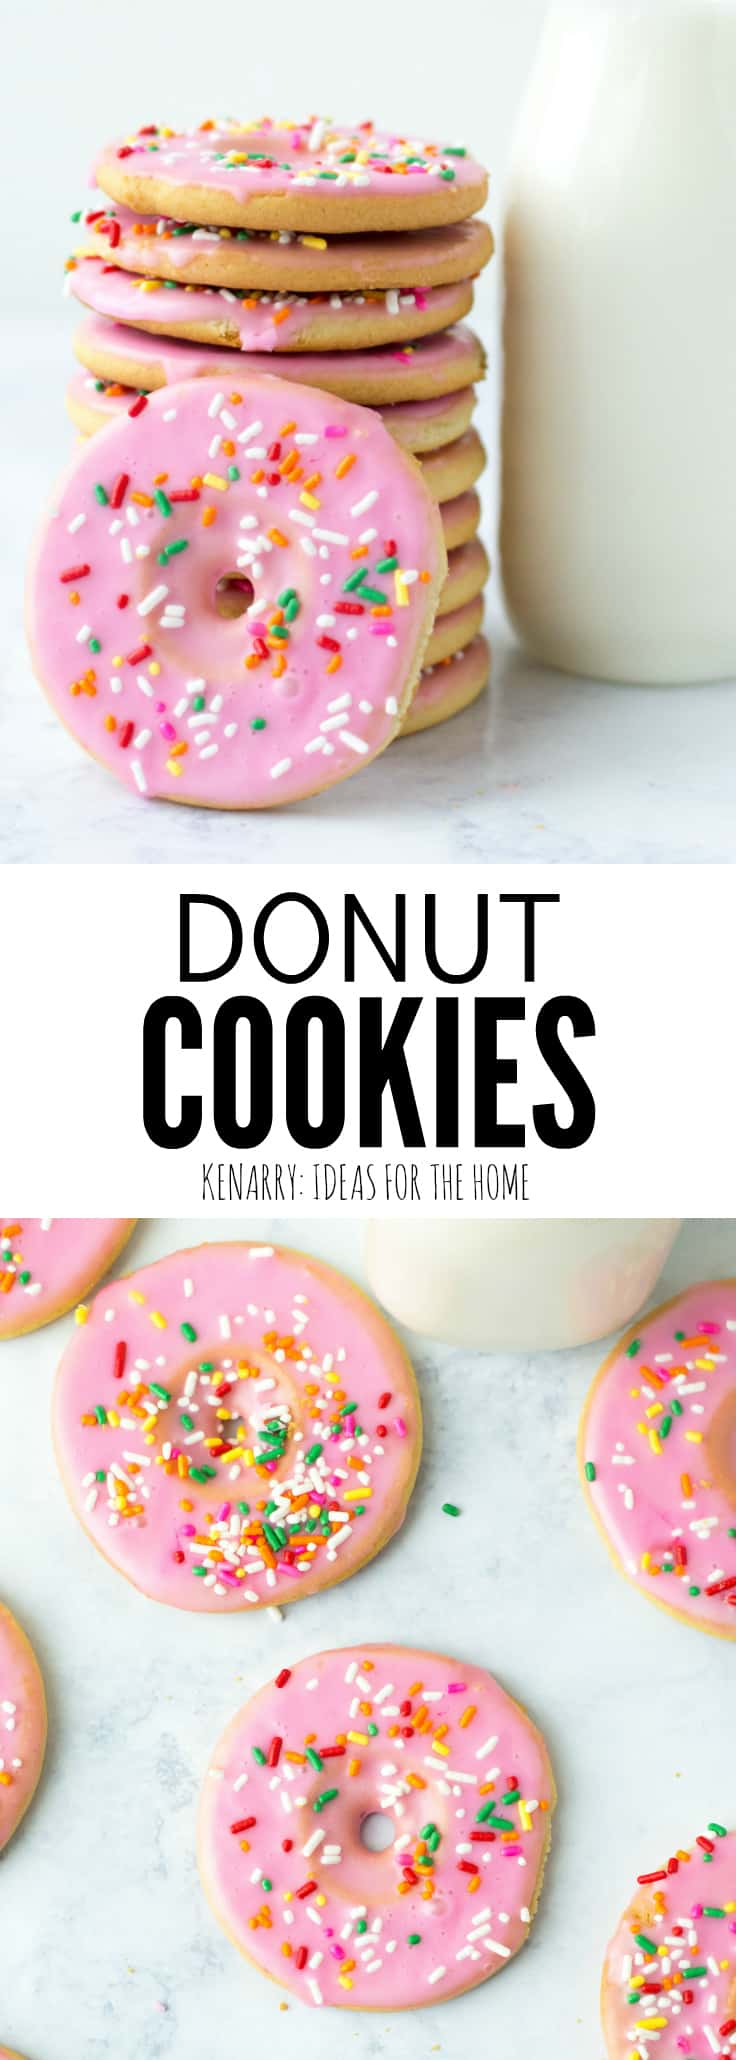 Create a fun dessert with the kids using this easy recipe for frosted cut out Donut Cookies made from sugar cookie dough. Decorated with sprinkles, these cookies are a great party treat! #donuts #sugarcookies #ideasforthehome #kenarry